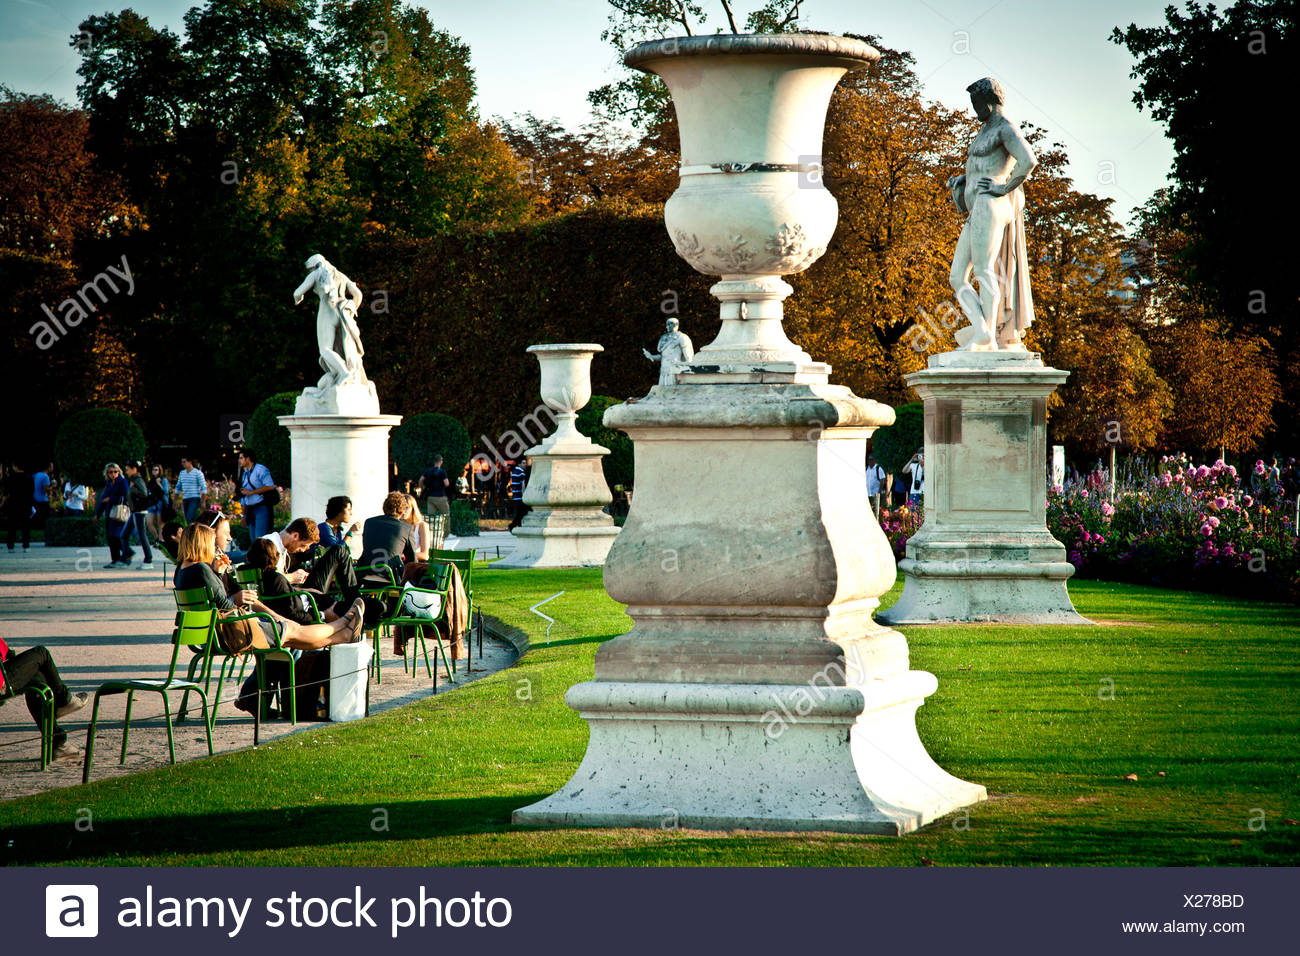 jardin des tuileries in paris france europe X278BD